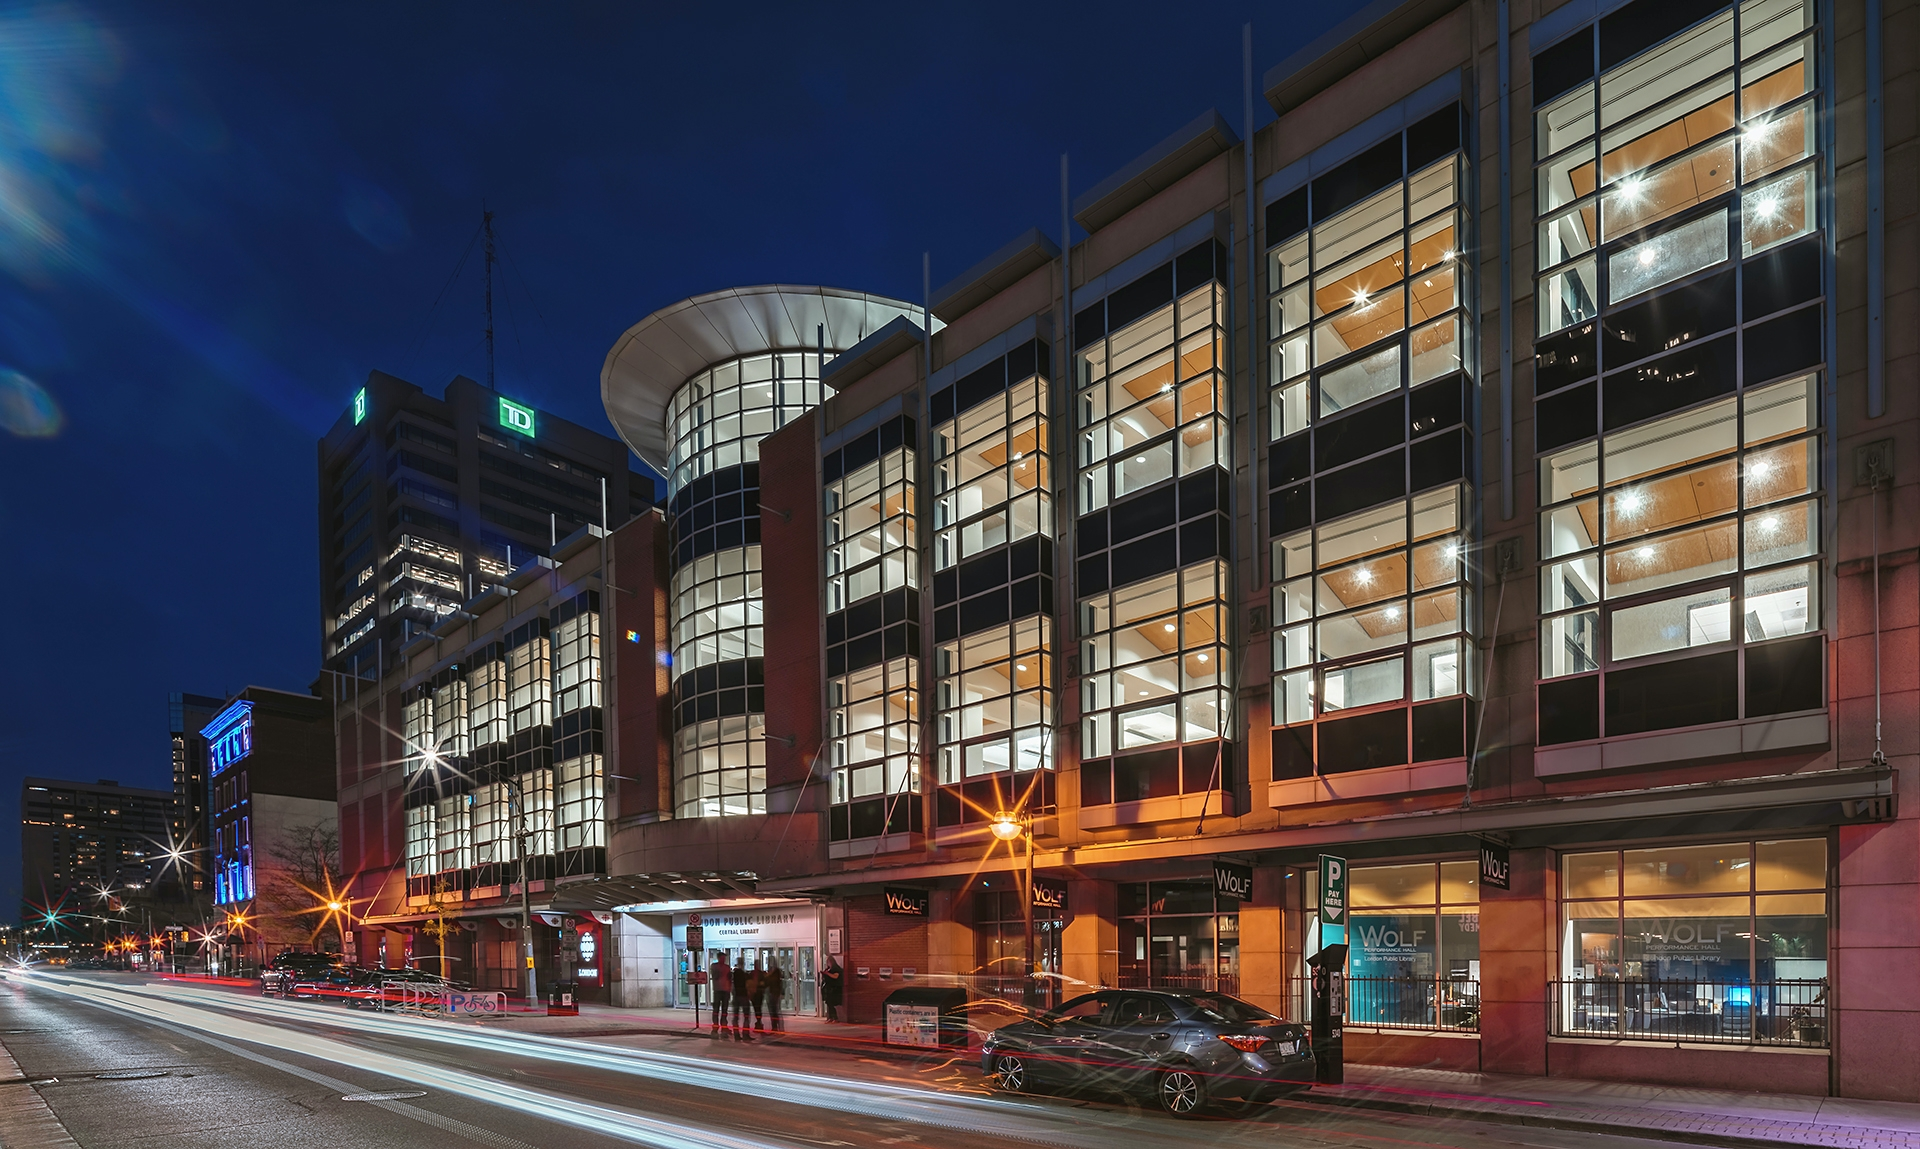 Twilight / Night photography of the downtown library in London Ontario